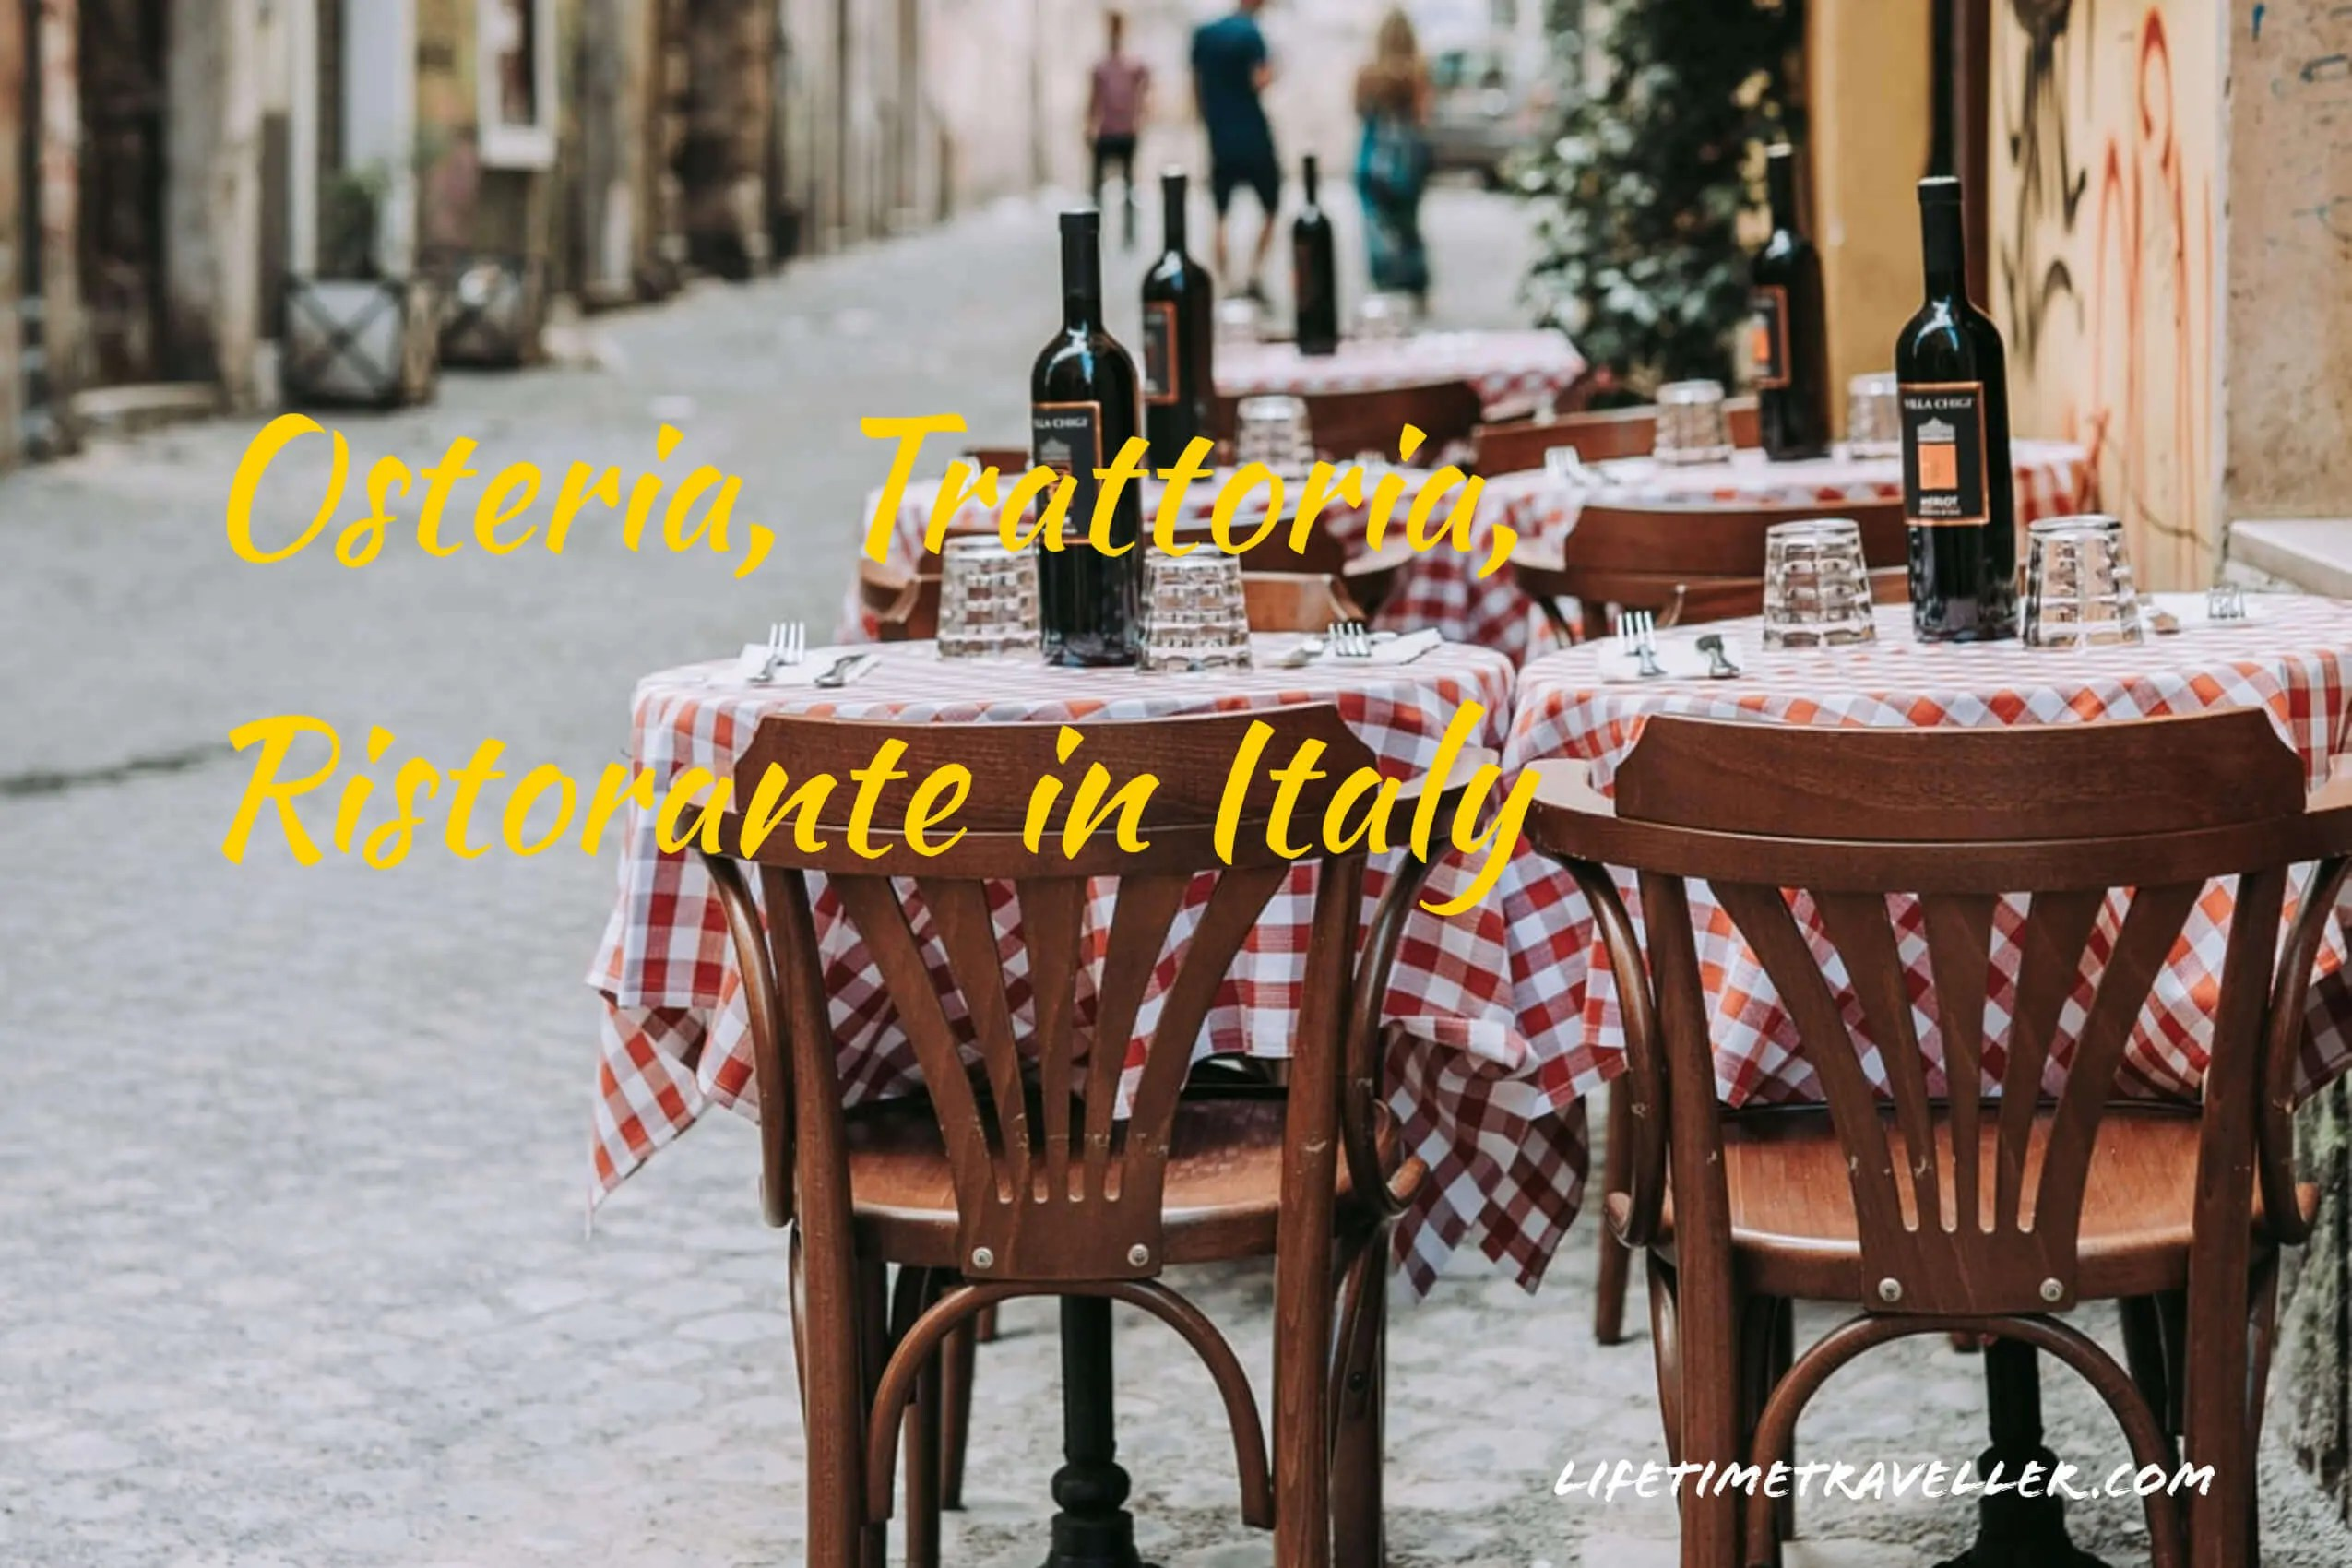 Differences Between Osteria, Trattoria, and Ristorante Eateries in Italy